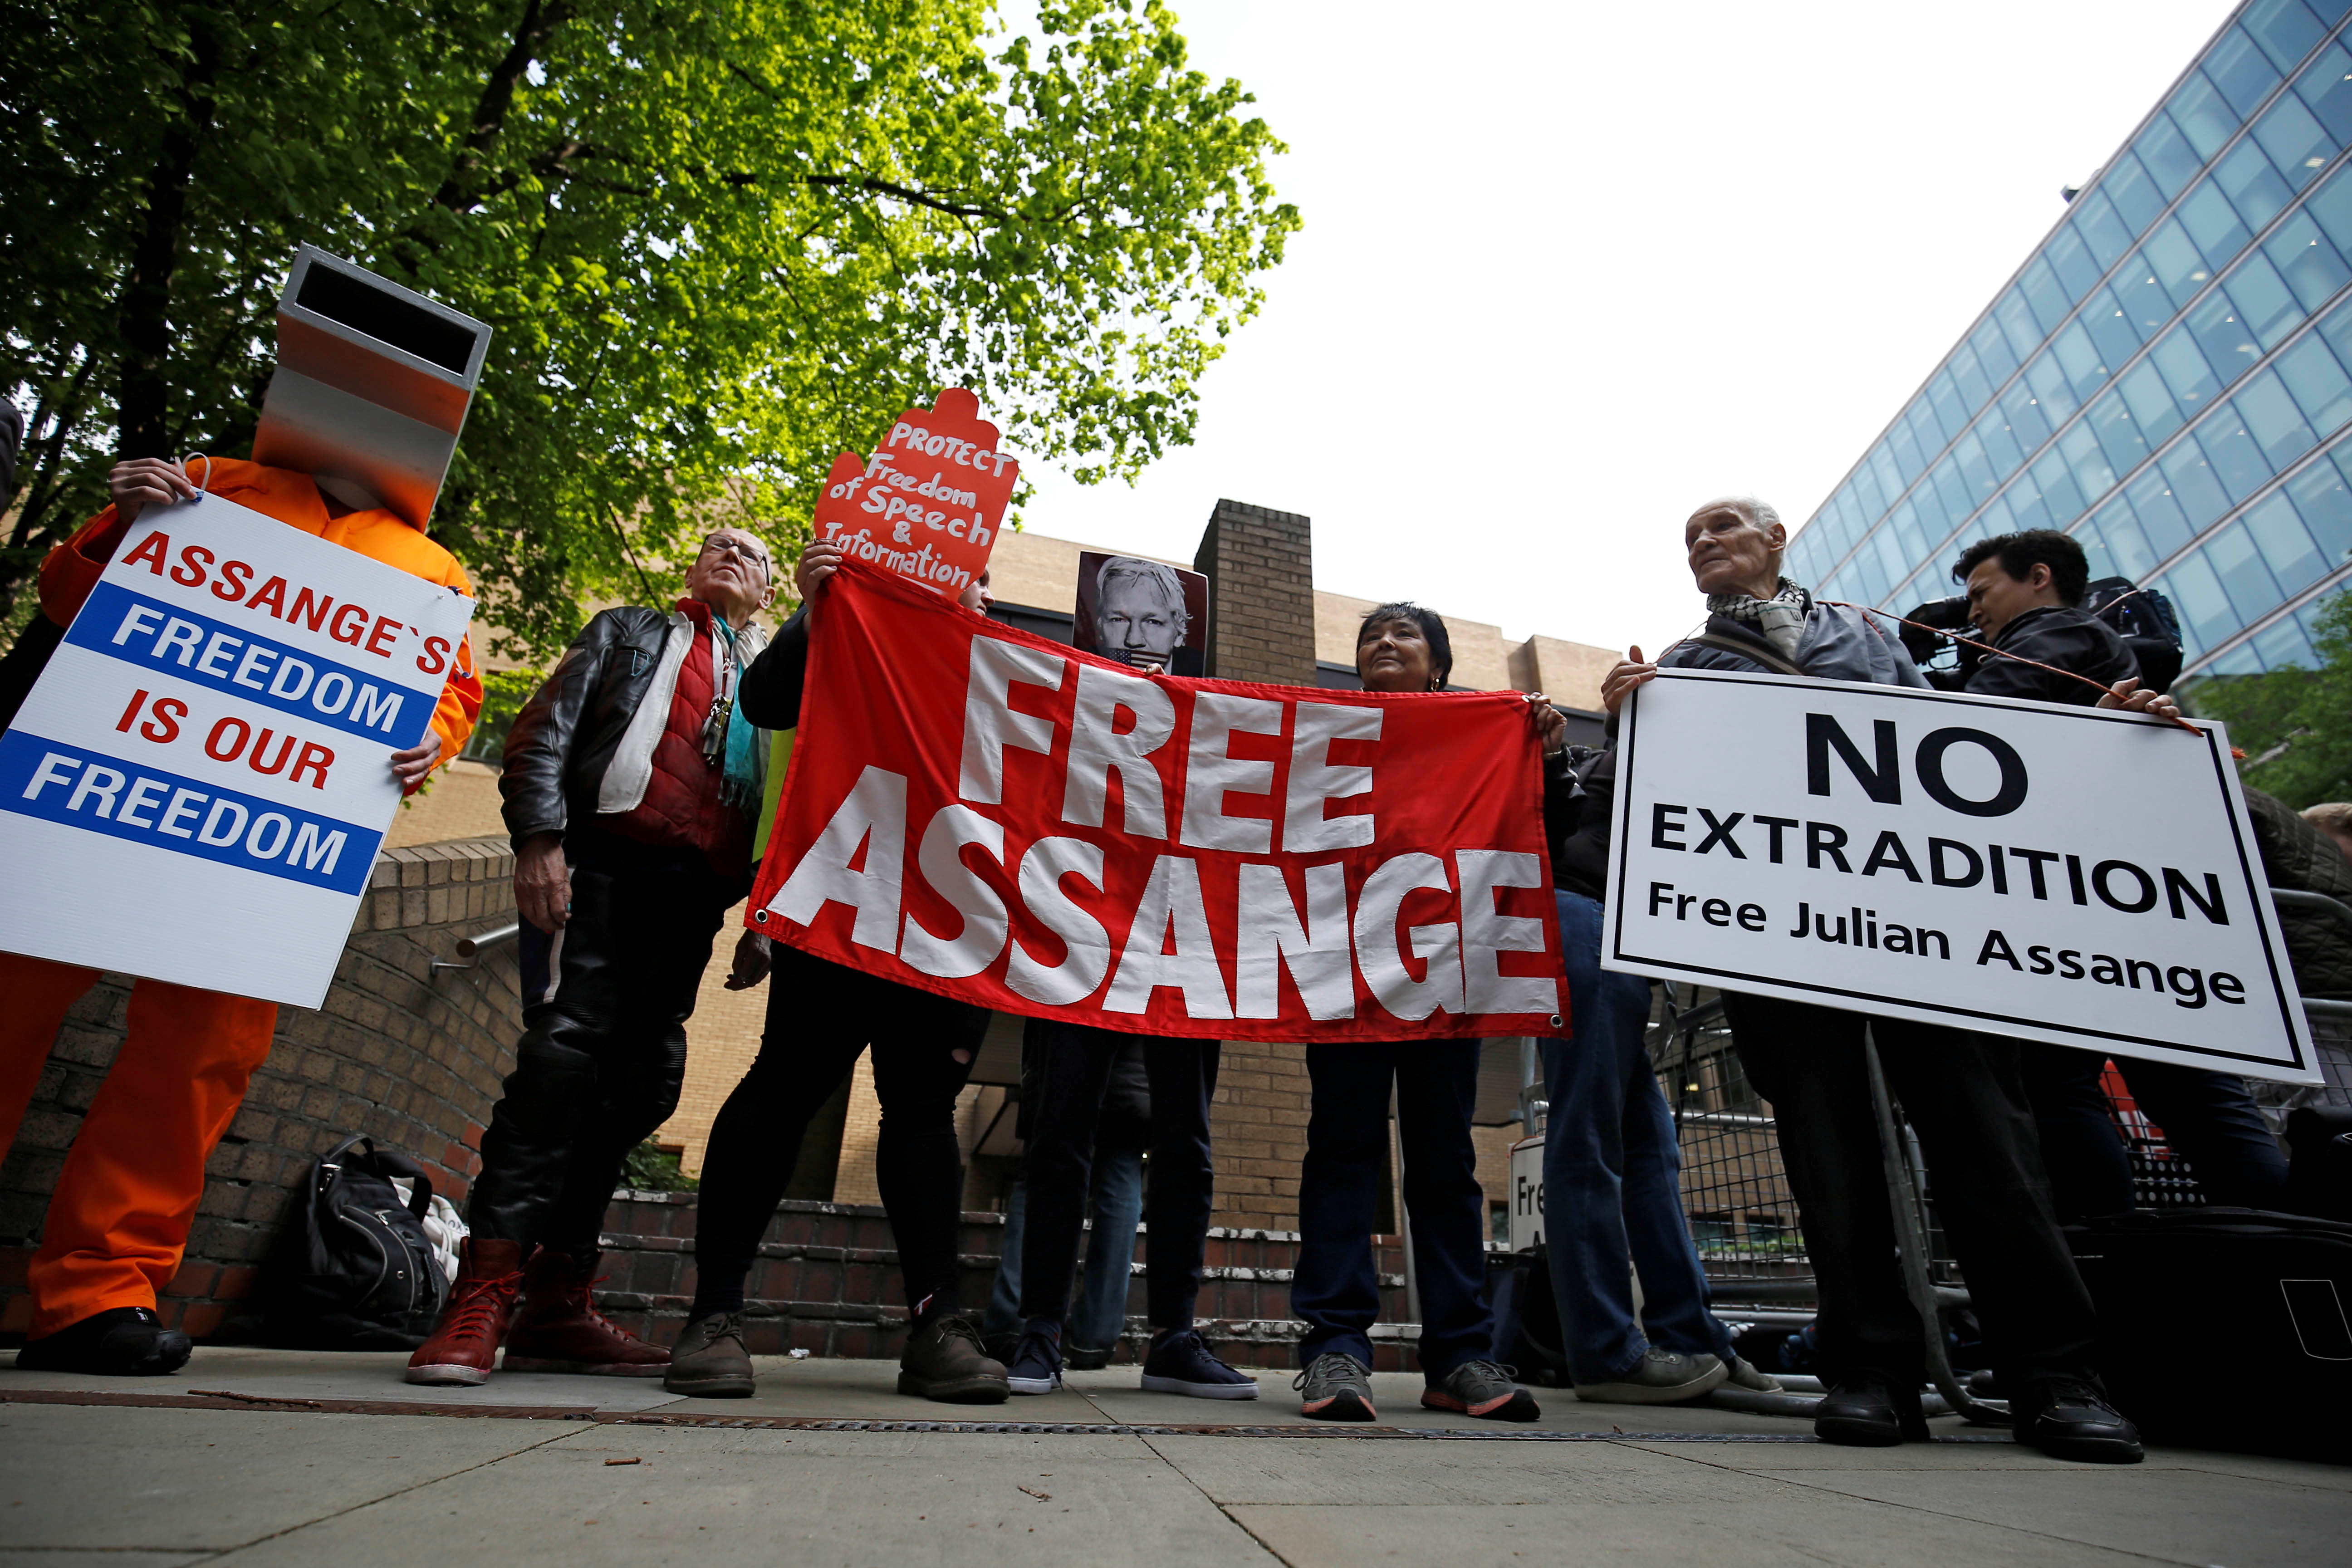 People hold signs during a protest outside Southwark Crown Court where WikiLeaks founder Julian Assange will be sentenced, in London, Britain, May 1, 2019. REUTERS/Henry Nicholls